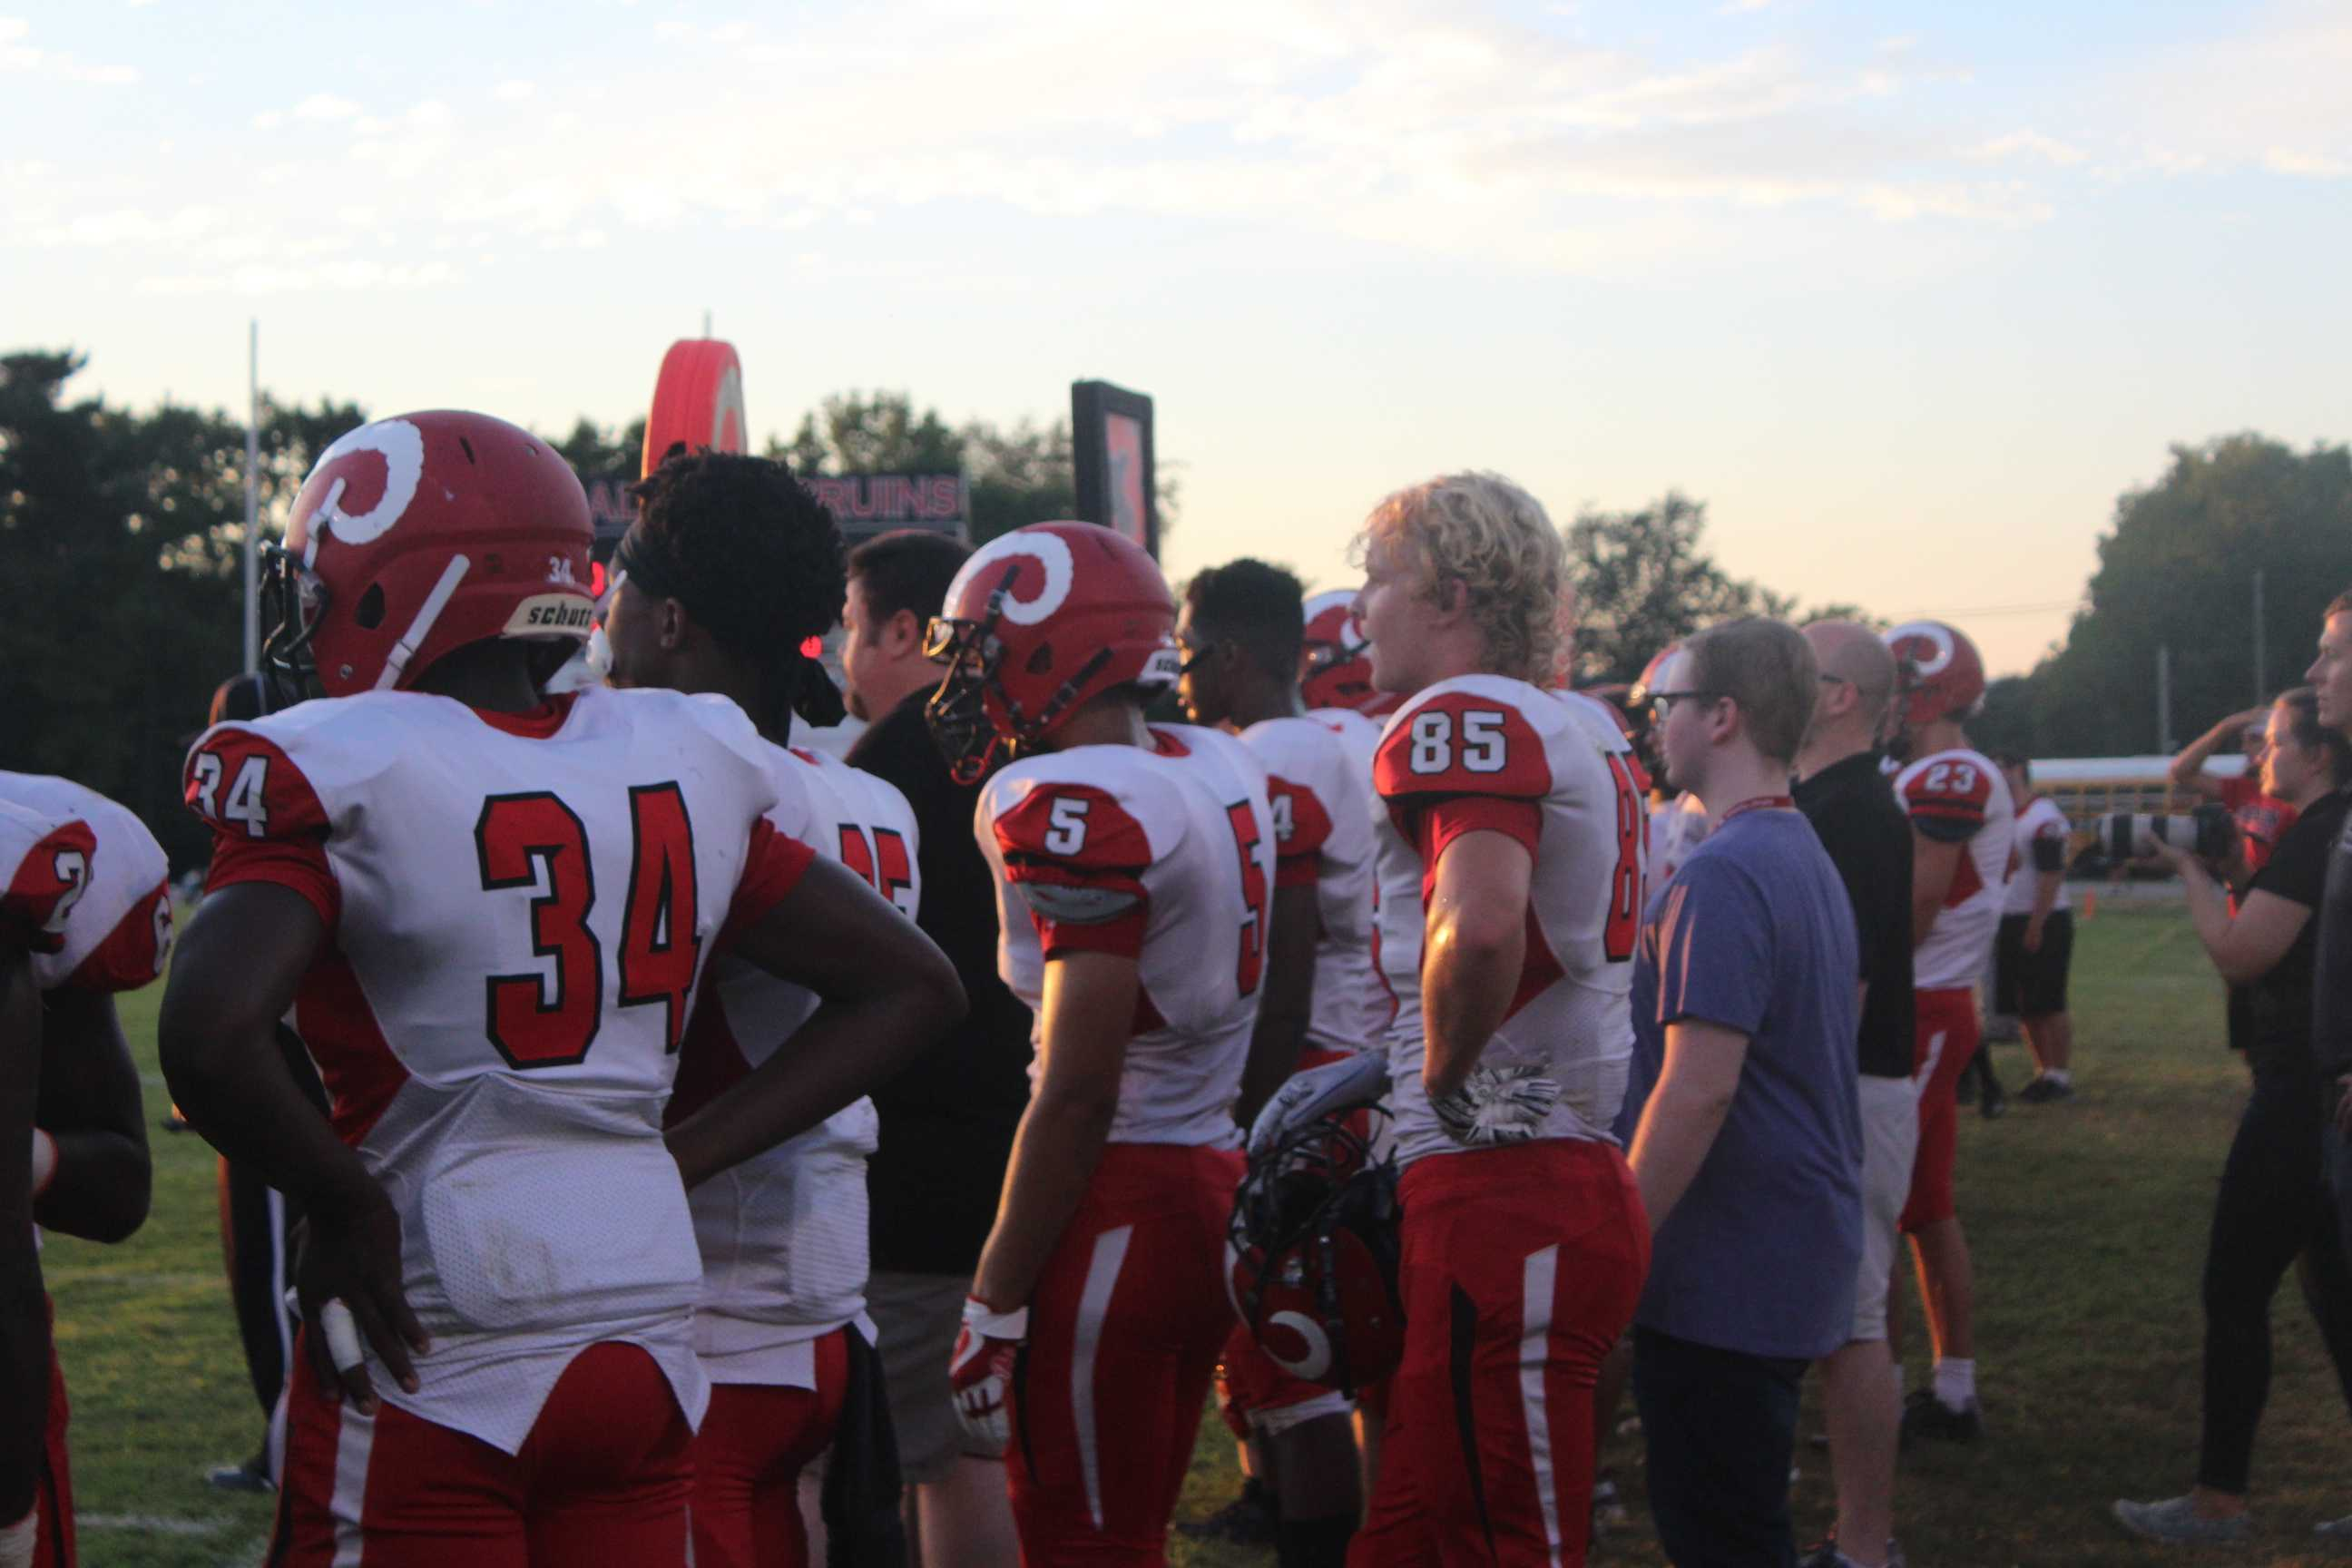 Manual+players+watch+their+teammates+from+the+sidelines.+Photo+by+Katelyn+Bale.